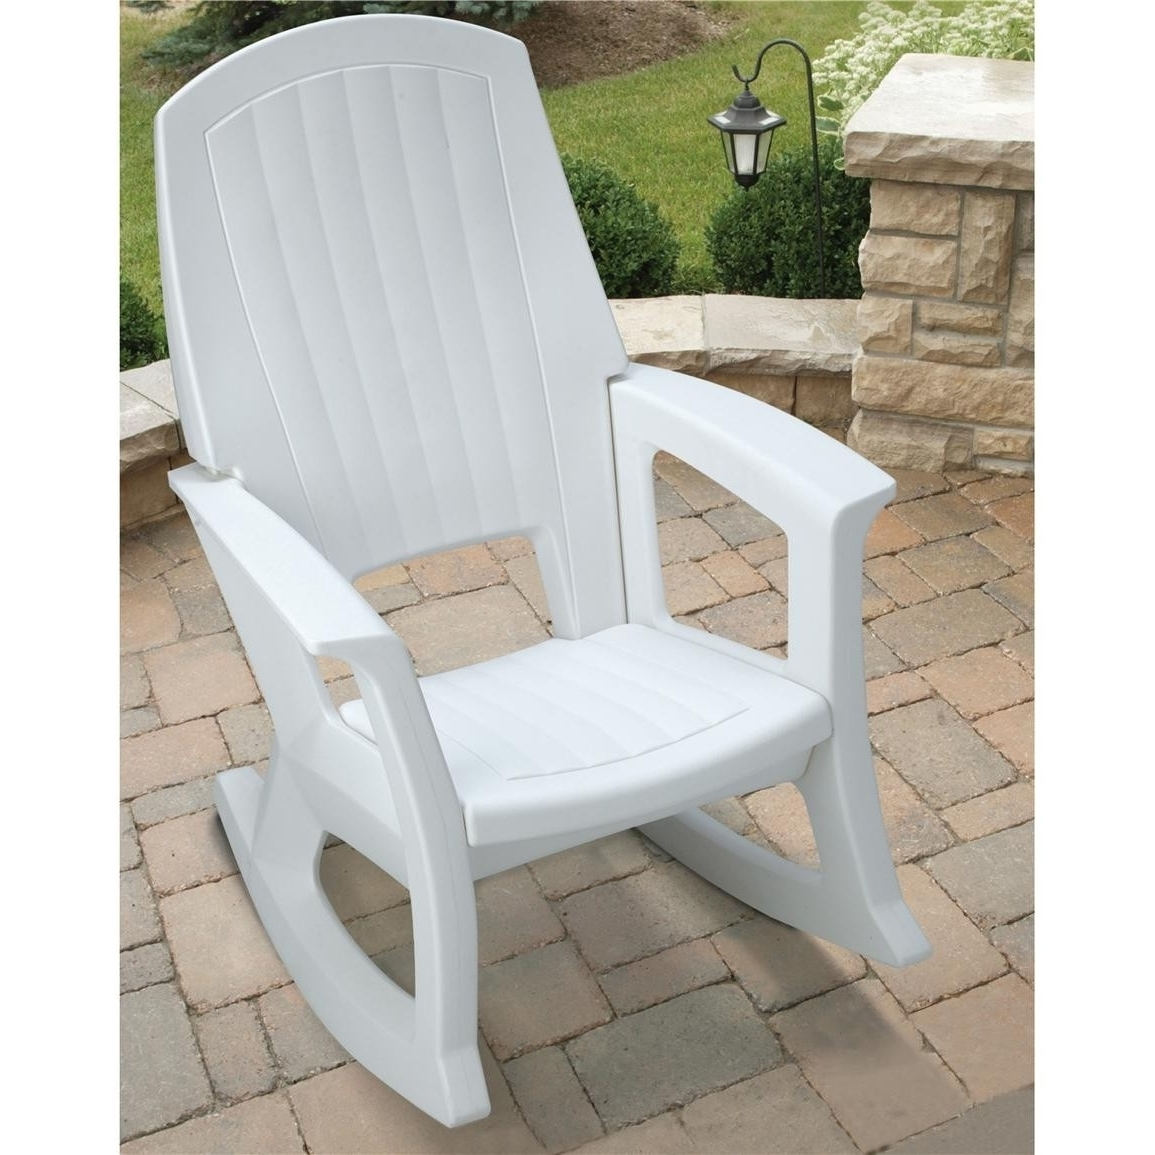 Newest White Patio Rocking Chairs Regarding White Patio Rocking Chair Intended For Patio Rocking Chairs Patio (View 6 of 20)